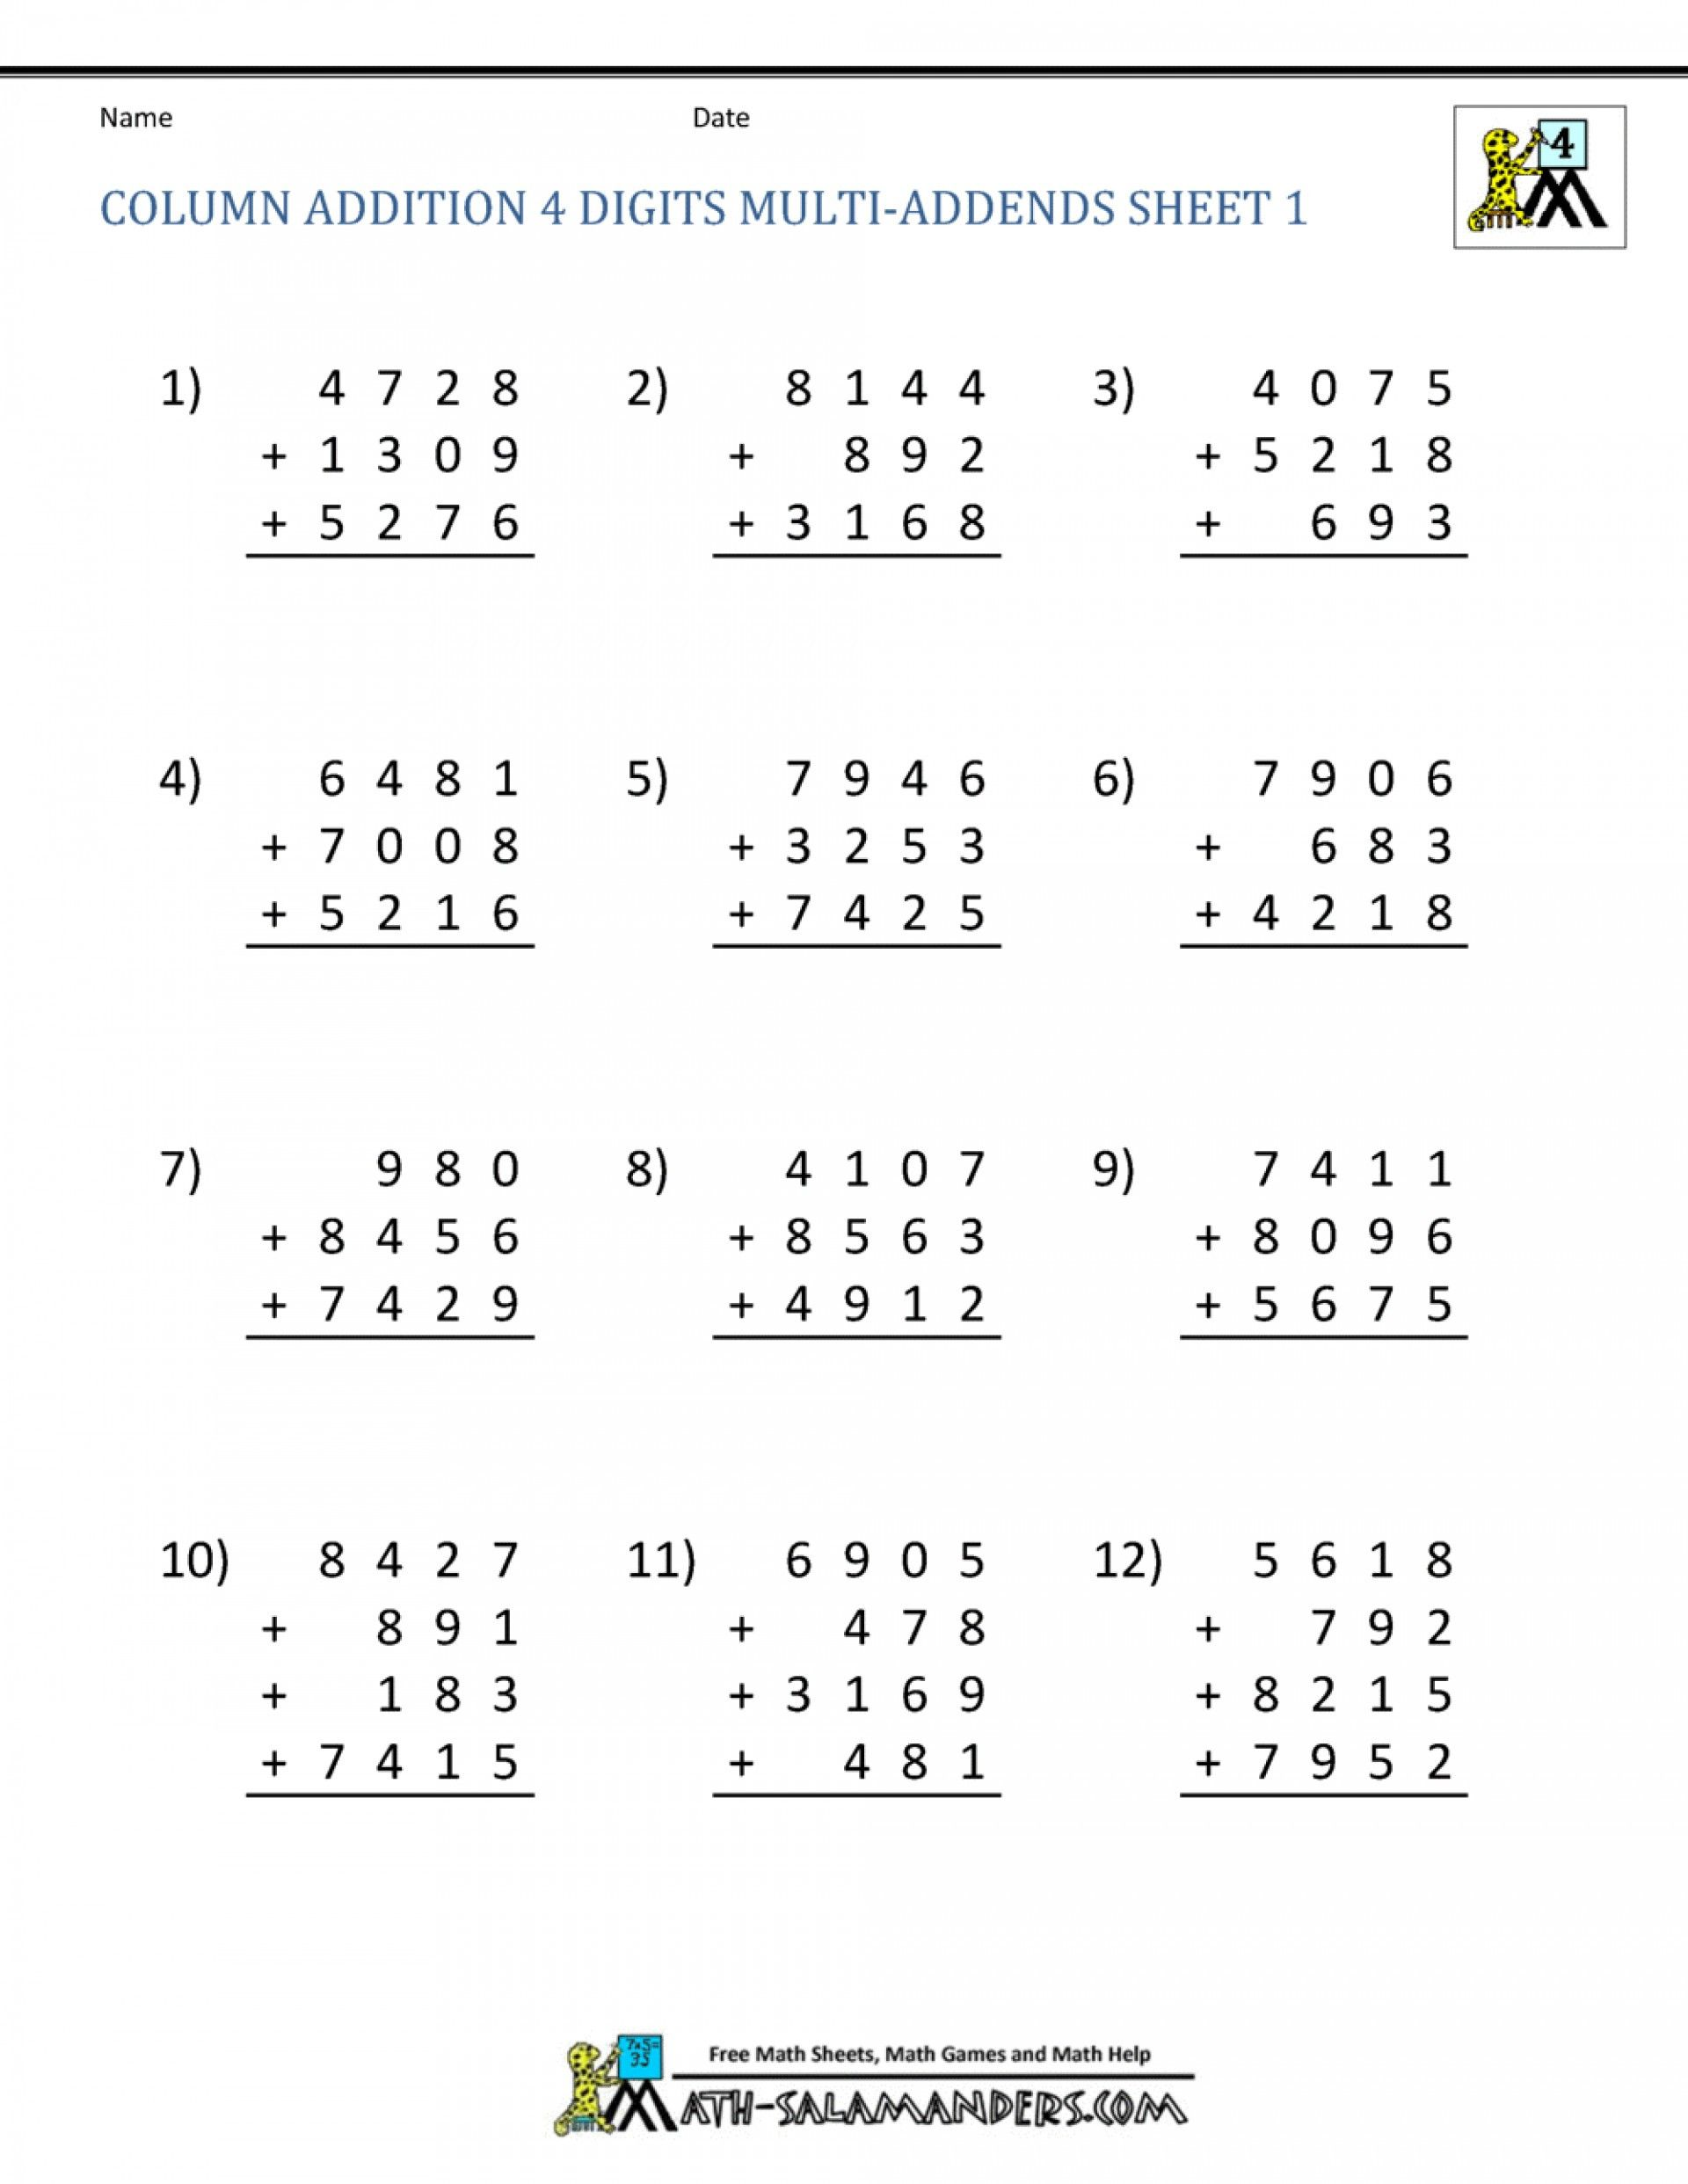 4 Free Math Worksheets Second Grade 2 Addition Add 4 2